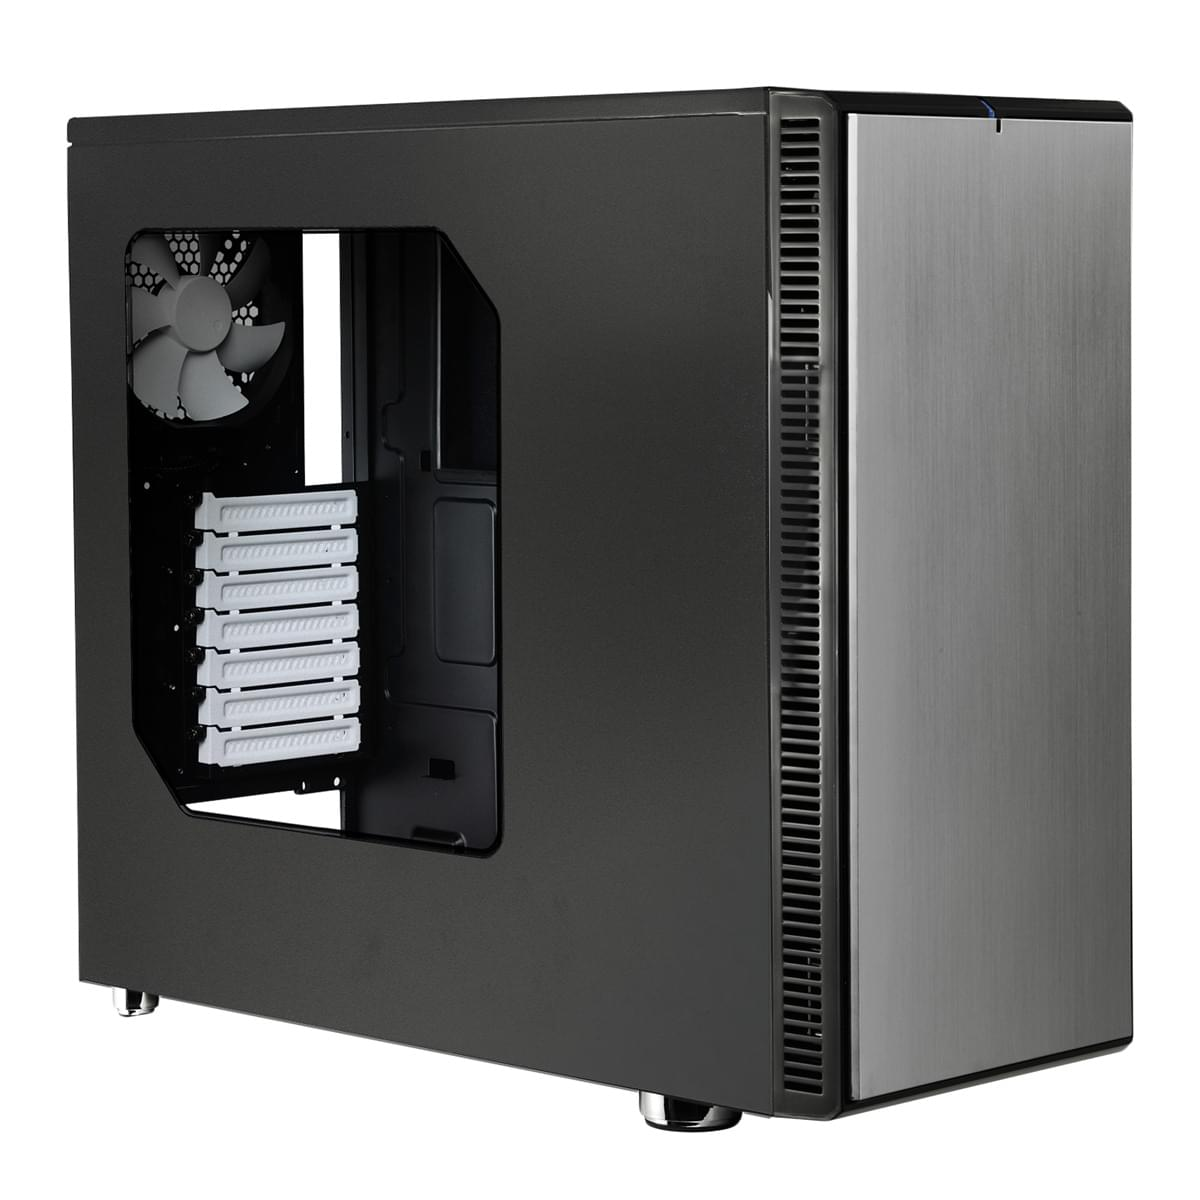 Fractal Design Define R4 Titanium Grey Window - Boîtier PC Acier - Sans Alim - 0